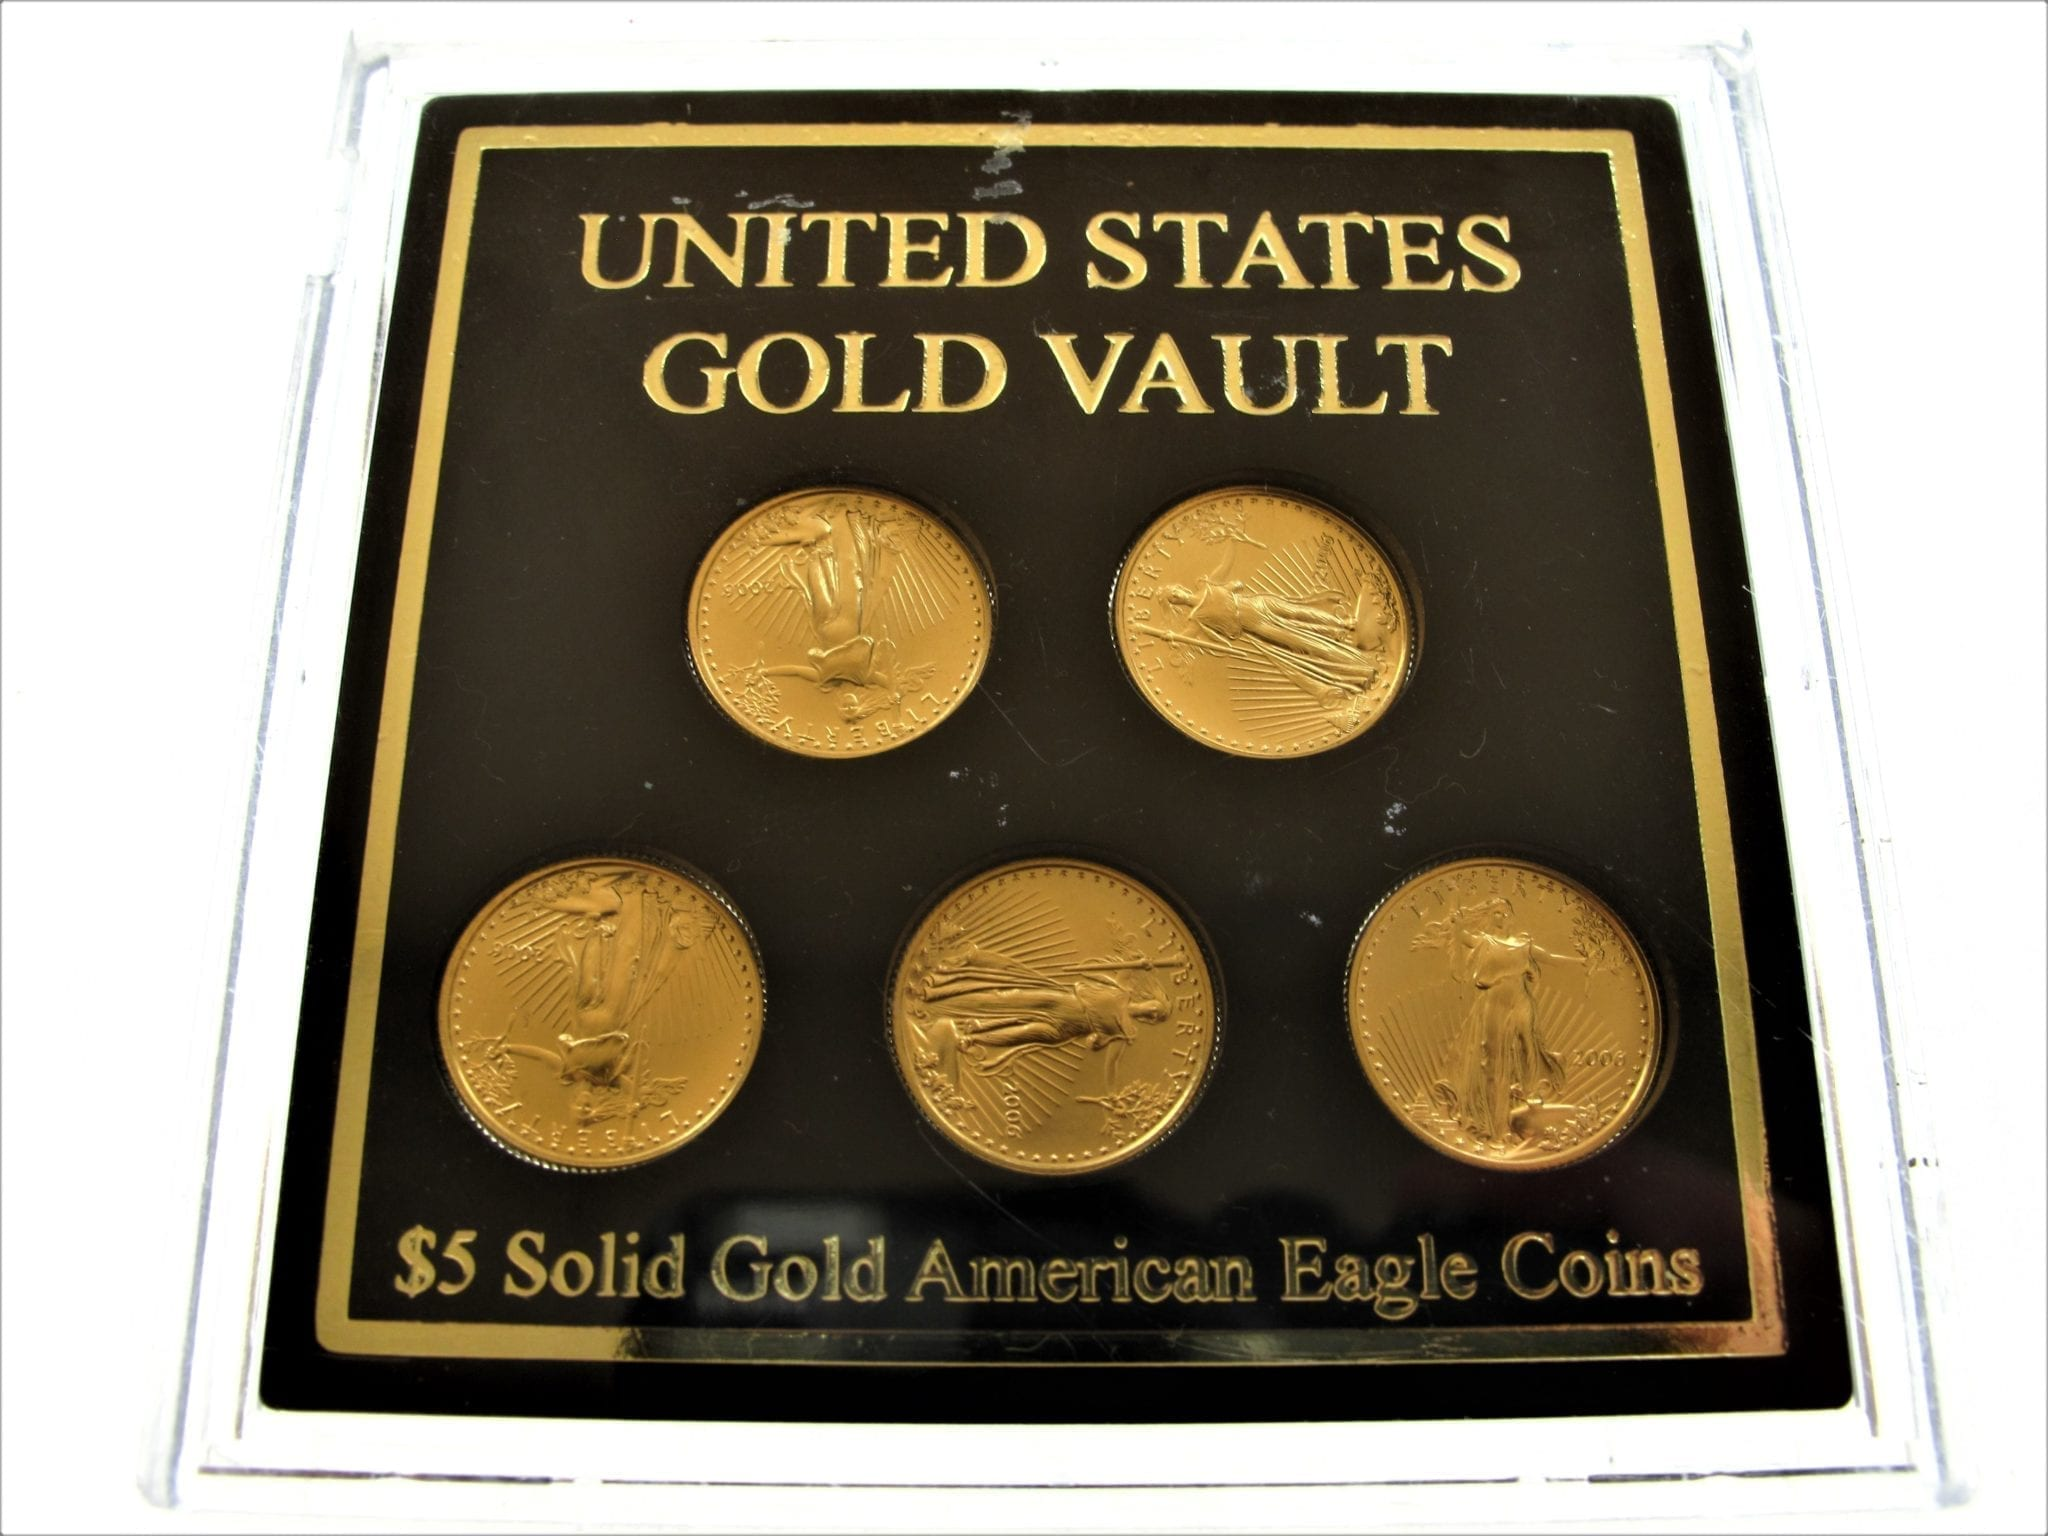 2006 United States Gold Vault 5 Solid Gold American